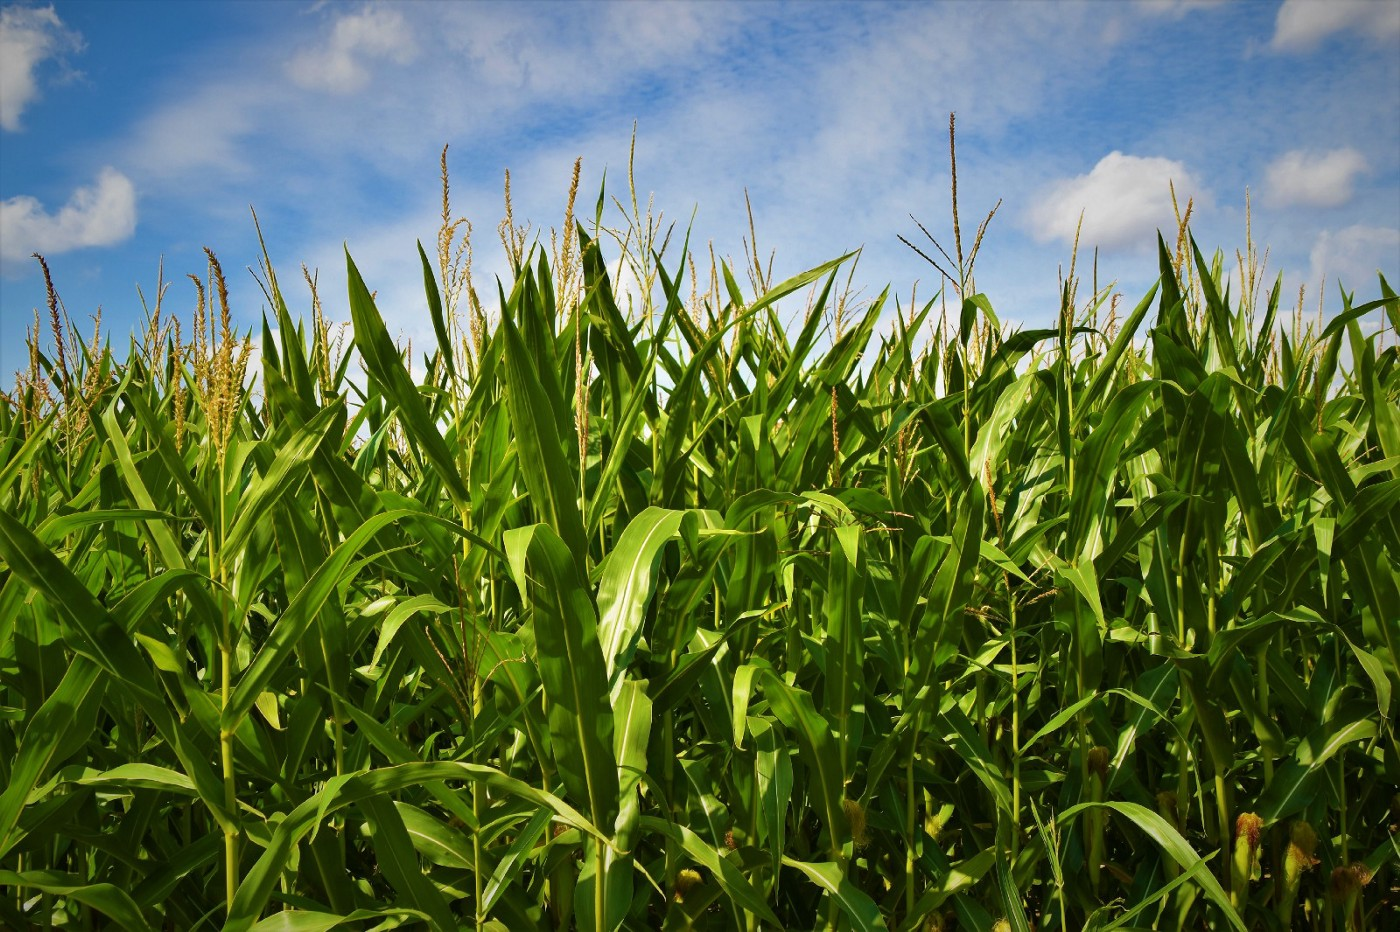 Corn Grows at Night: Reflections on Flood, Drought, and Climate Change